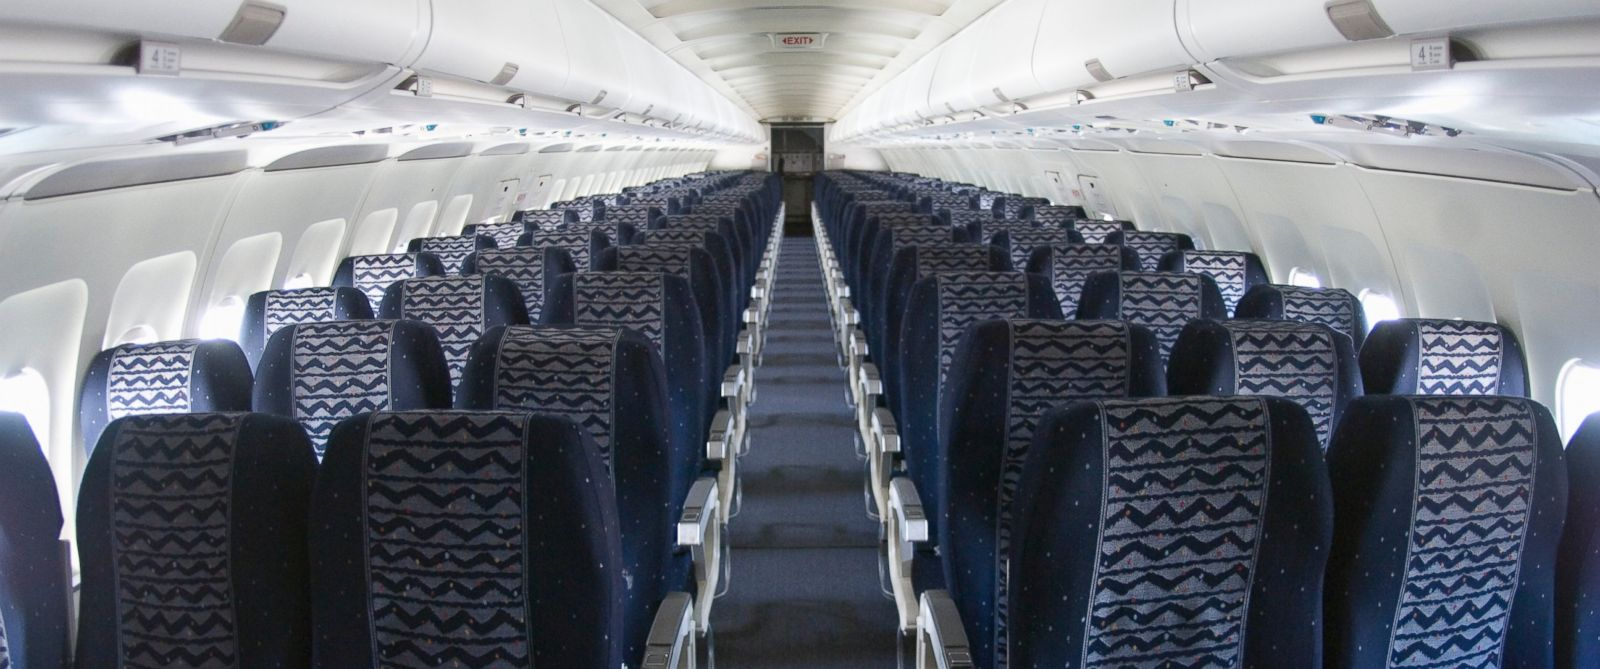 PHOTO: Empty seats are seen inside of an airplane in this undated stock photo.